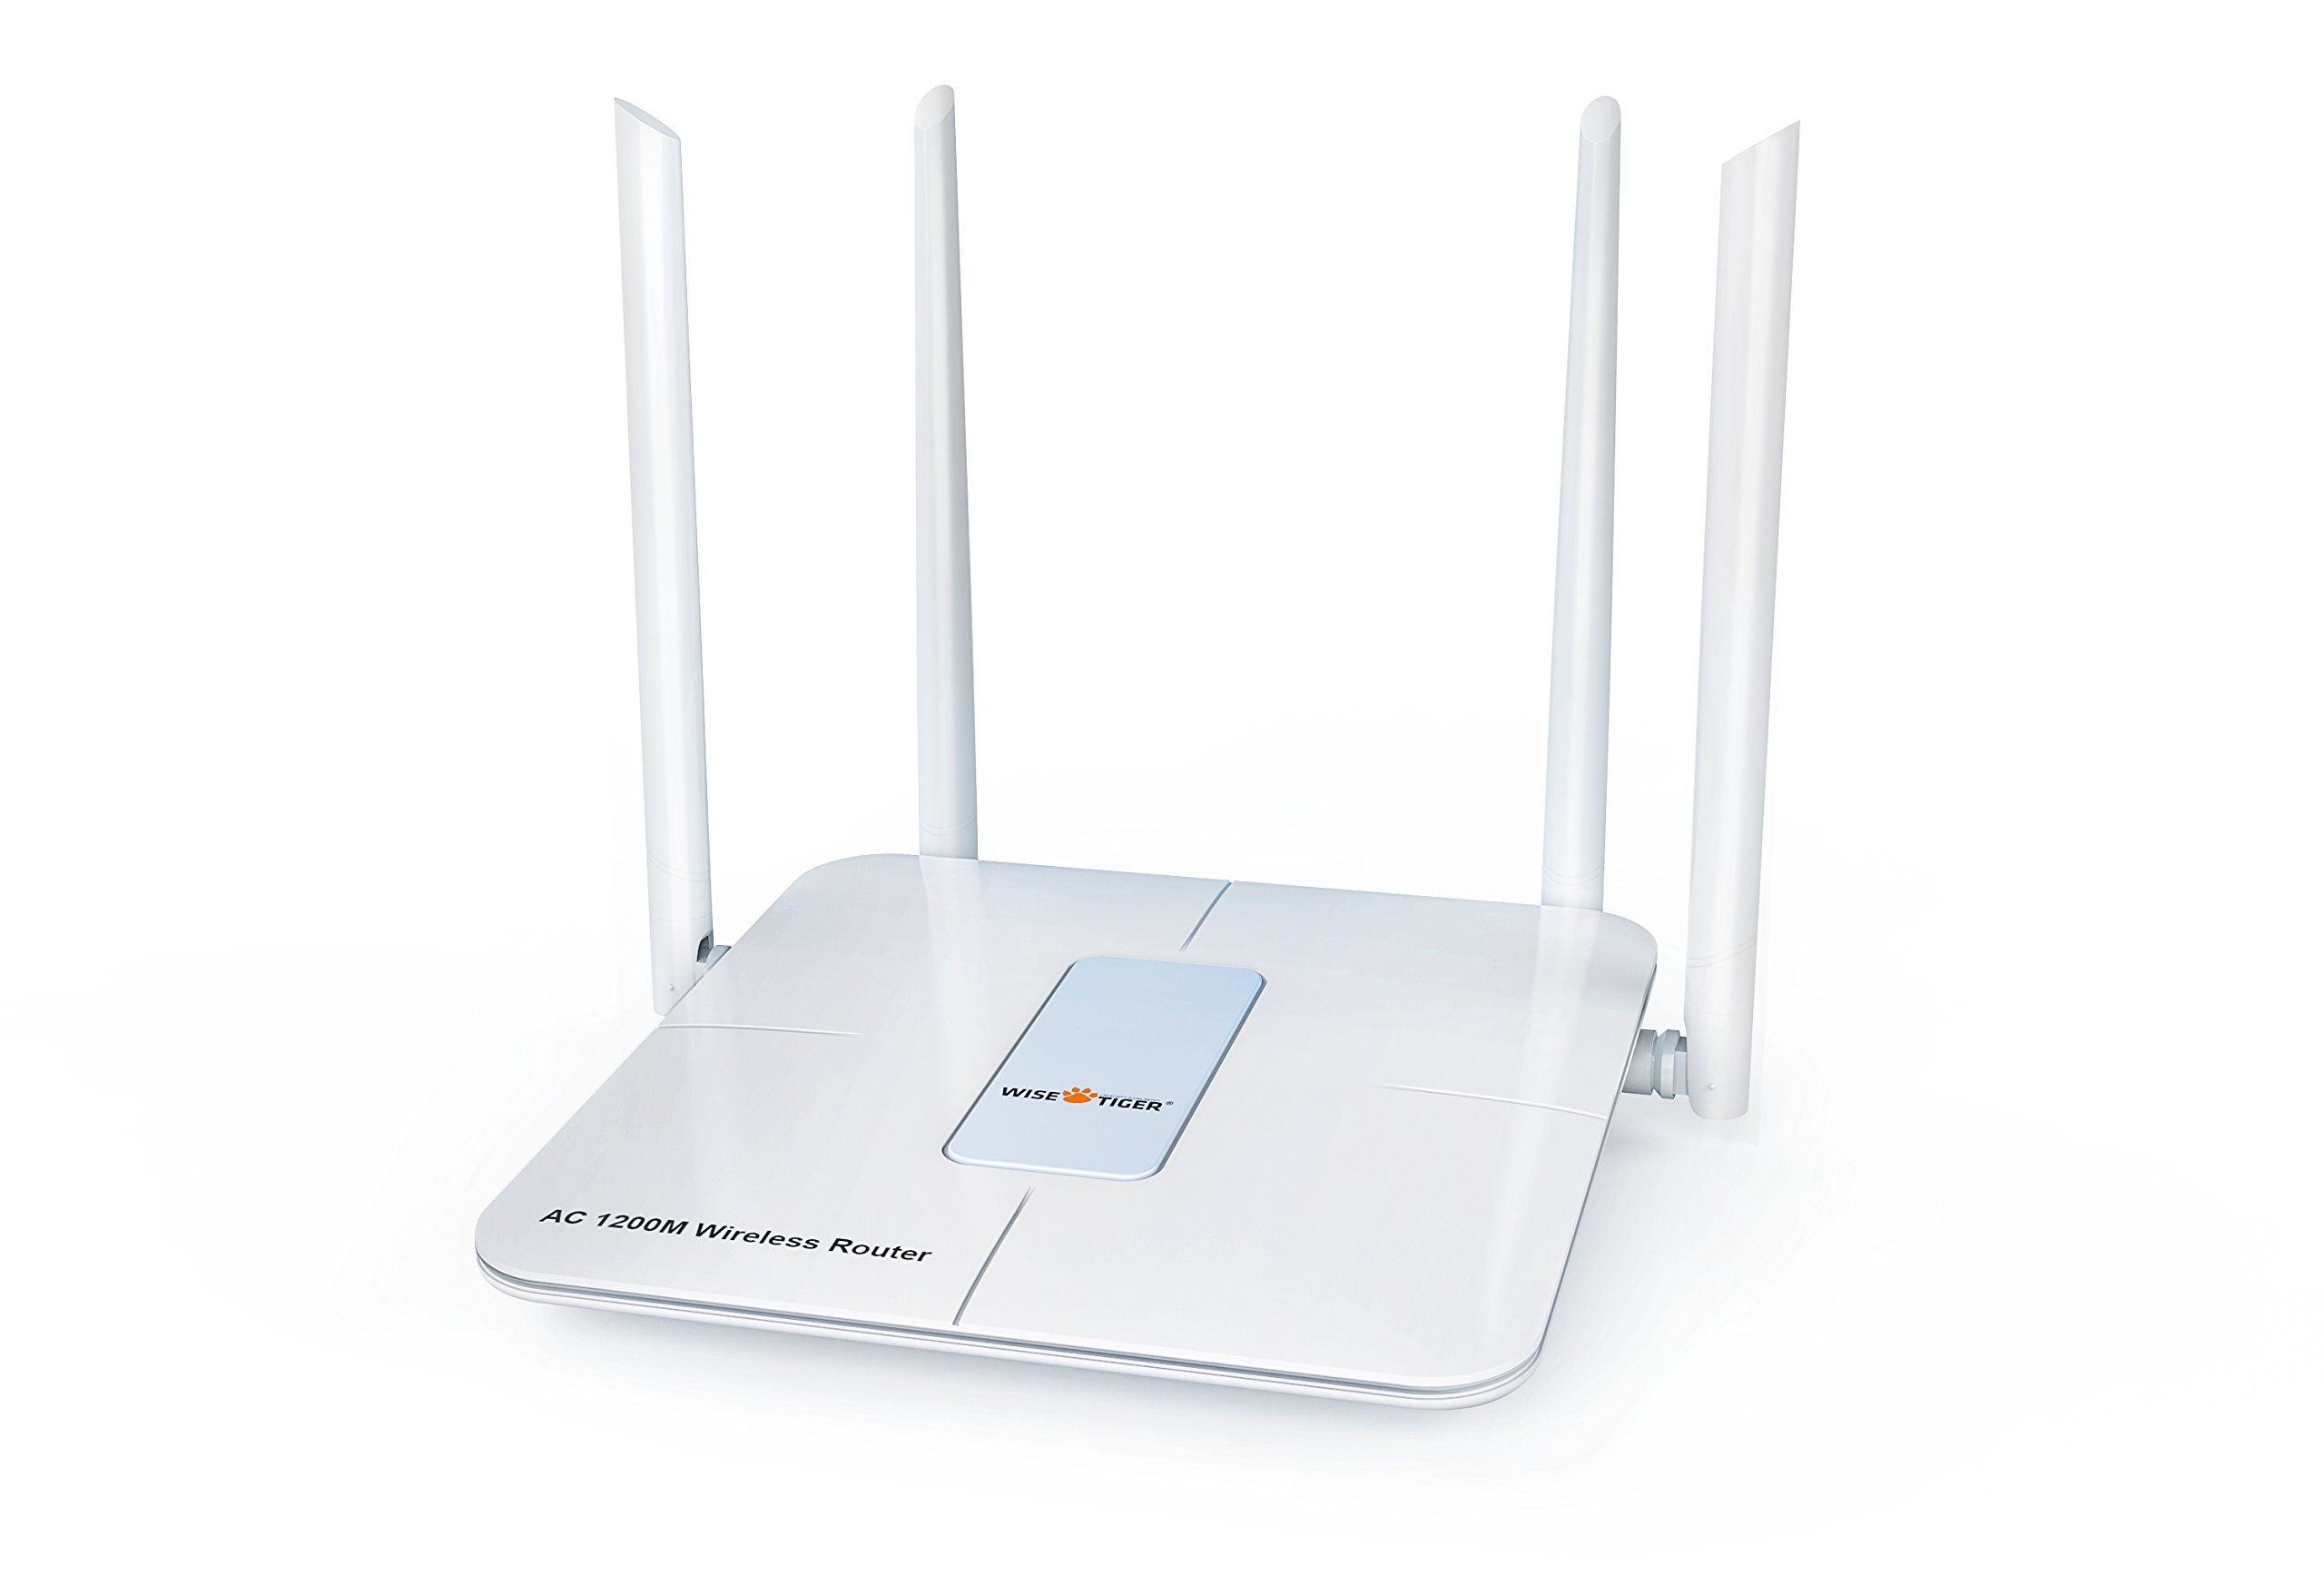 Great router